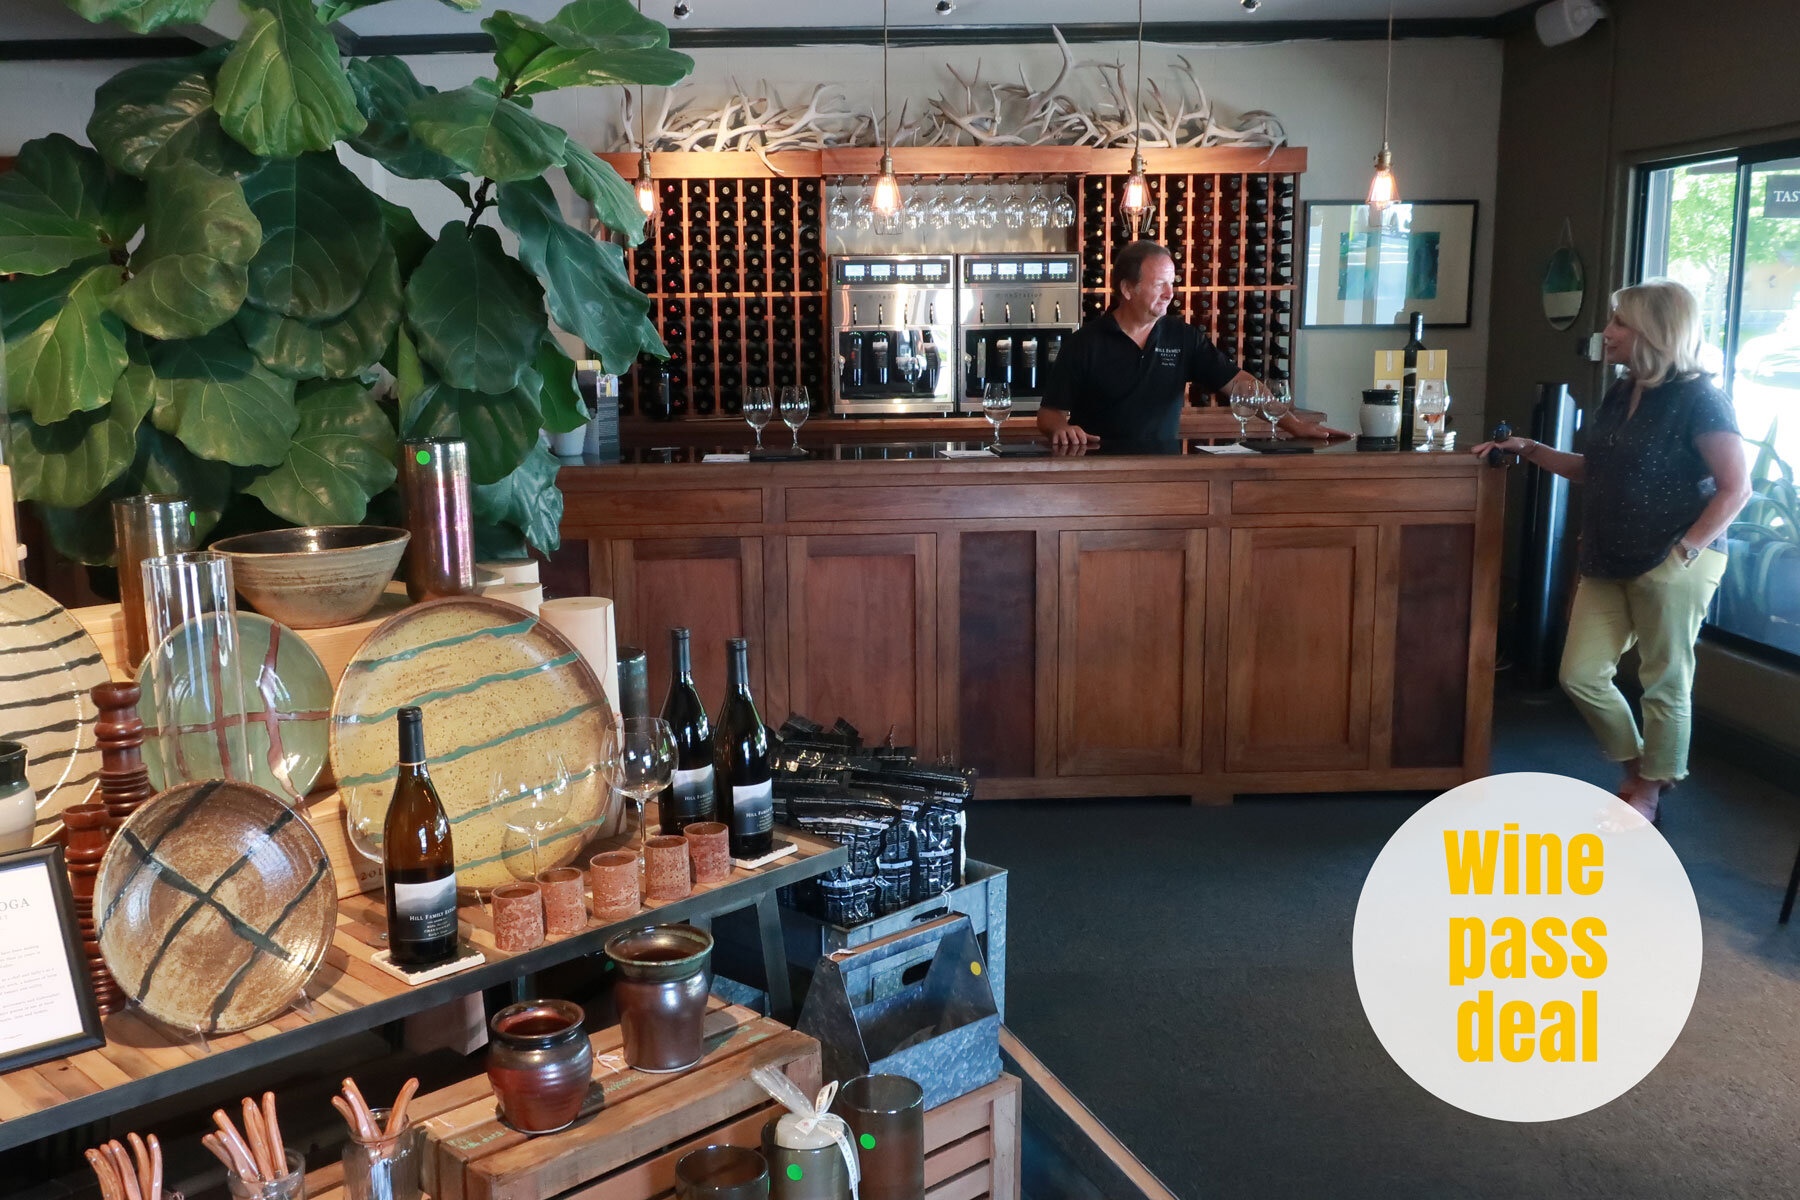 Hill Family Estate Wines in Yountville (Napa Valley)